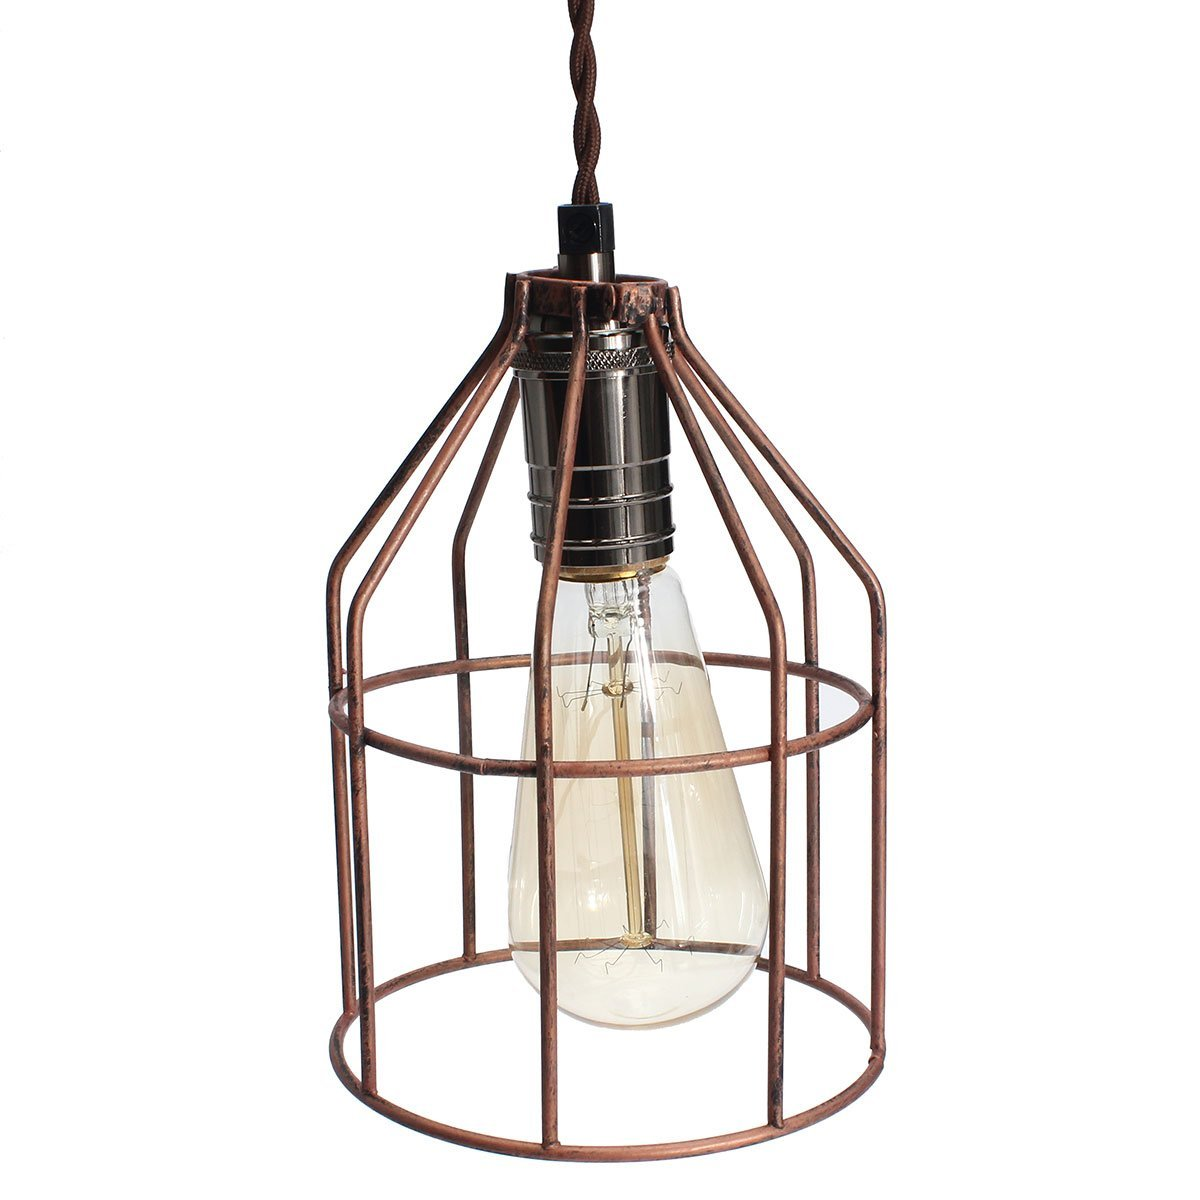 Buy jeteven vintage steel industrial wire lampshade bulb cage guard jeteven vintage steel industrial wire lampshade bulb cage guard hanging pendant string lights for e27 red keyboard keysfo Gallery